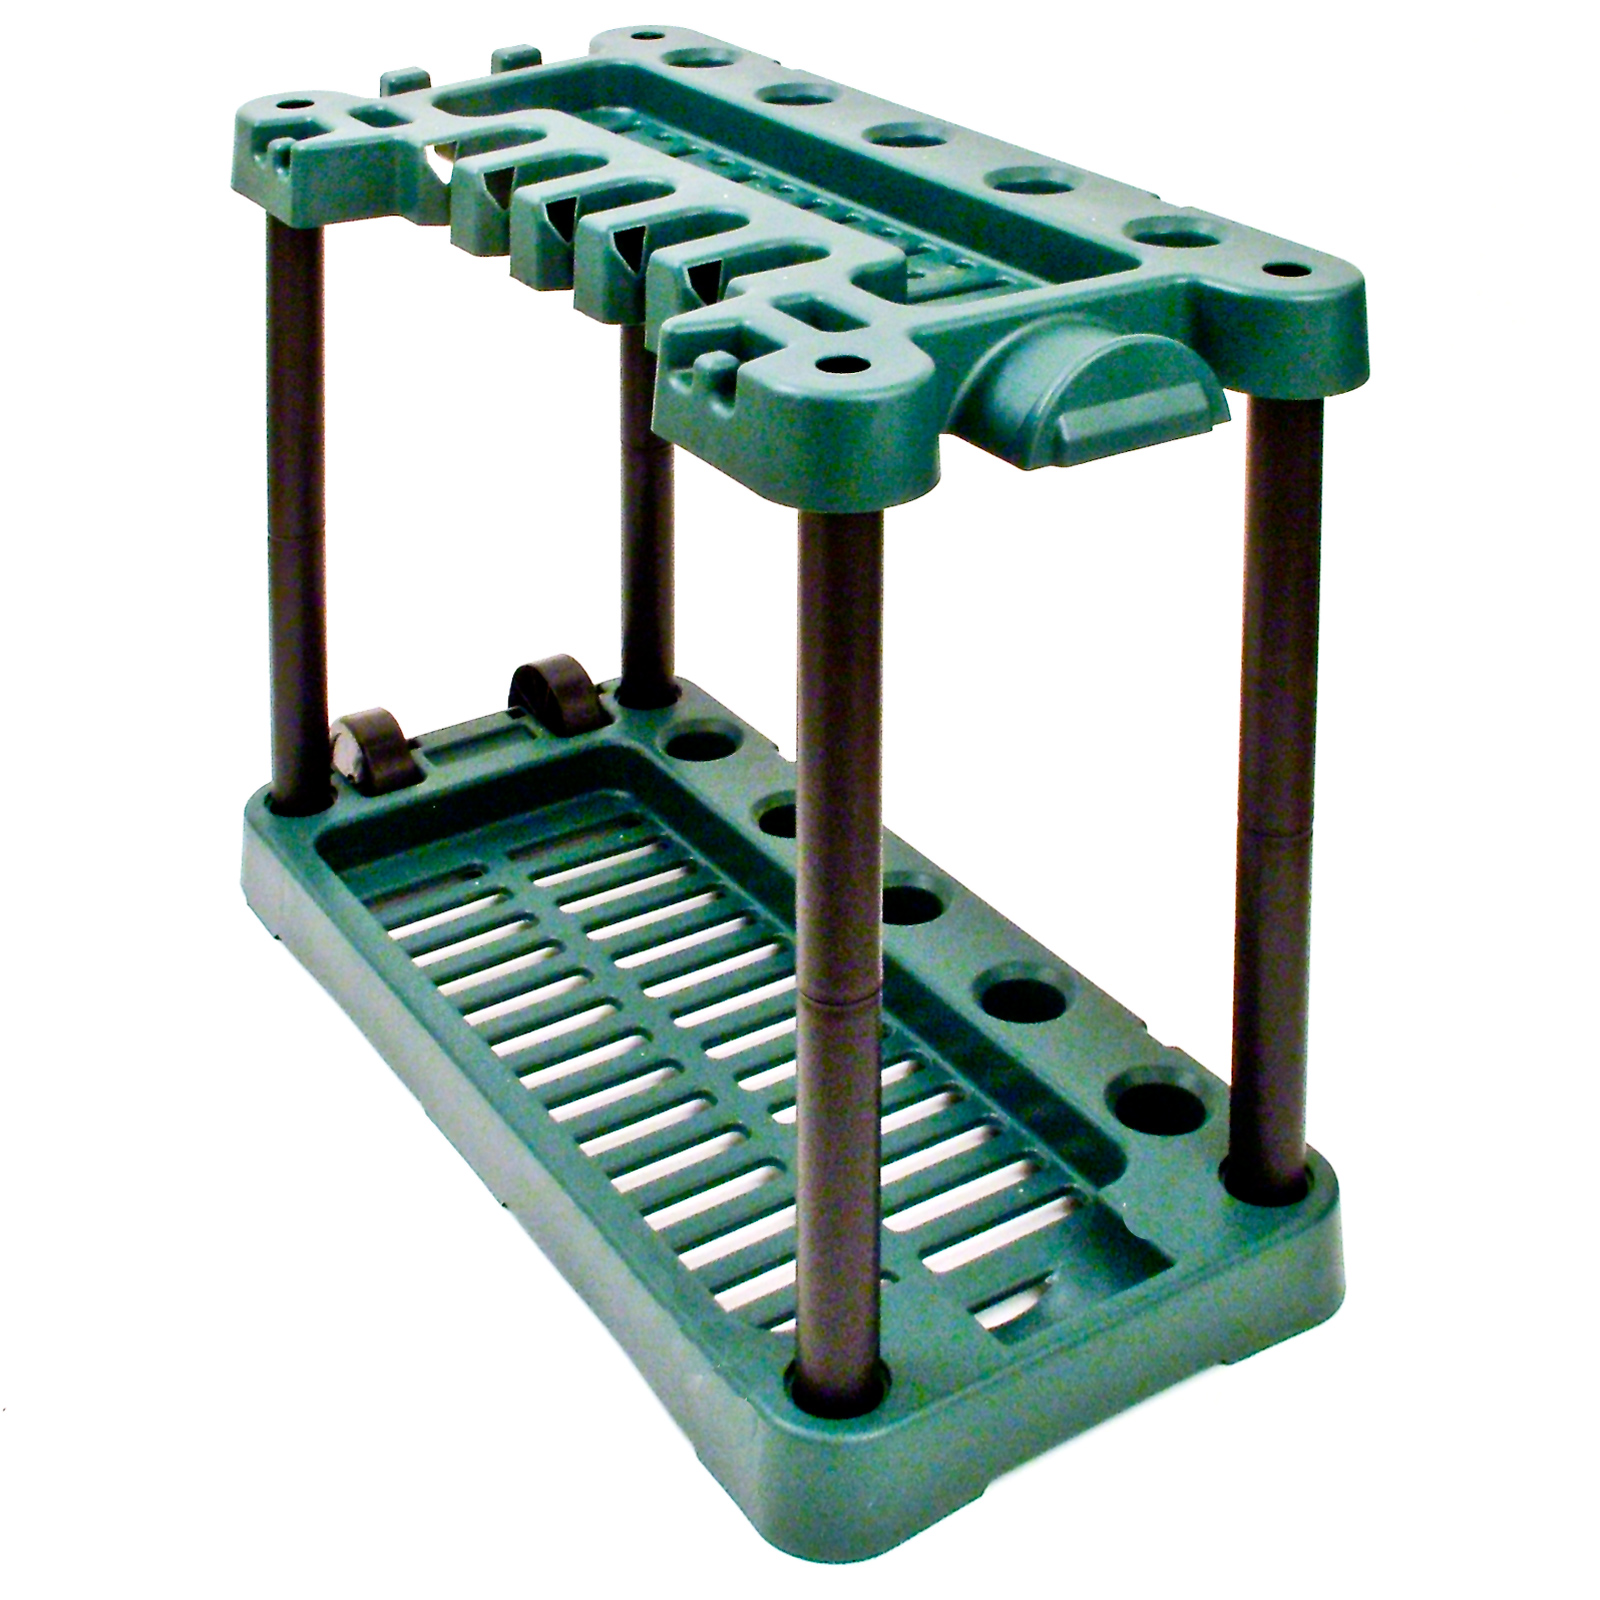 Garden Tool Storage Rack Holder On Wheels Shed Gardening Caddy eBay